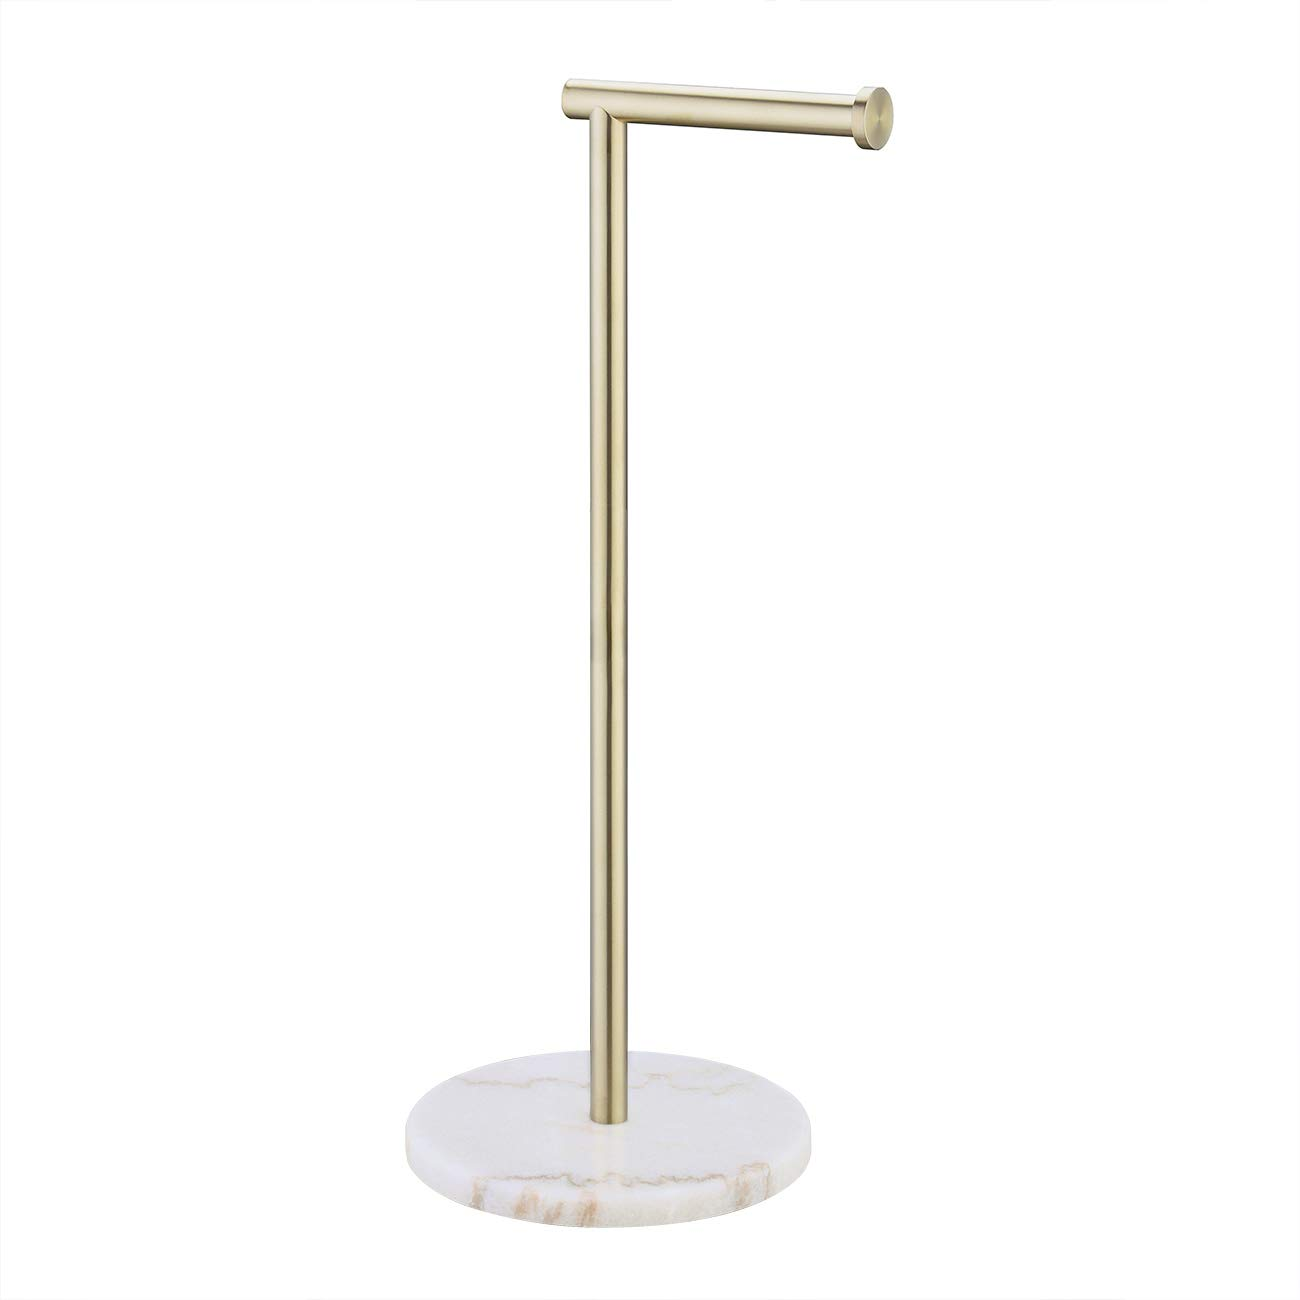 KES Gold Toilet Paper Holder Stand Tissue Roll Holder with Modern White Marble Base, SUS304 Stainless Steel Brushed Brass Finish BPH284S1-BZ